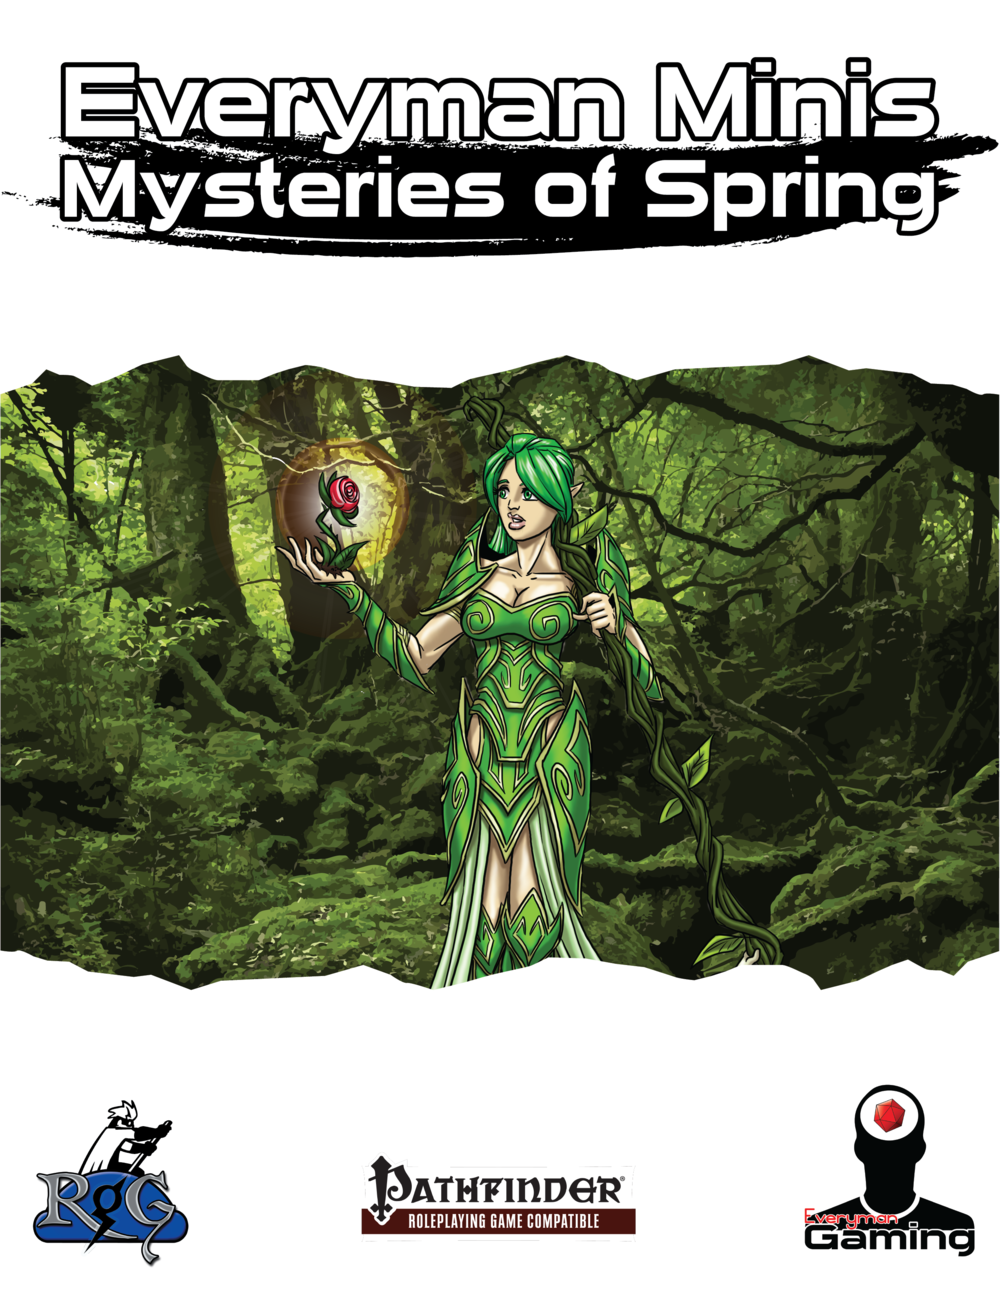 11 EMM Mysteries of Spring.png